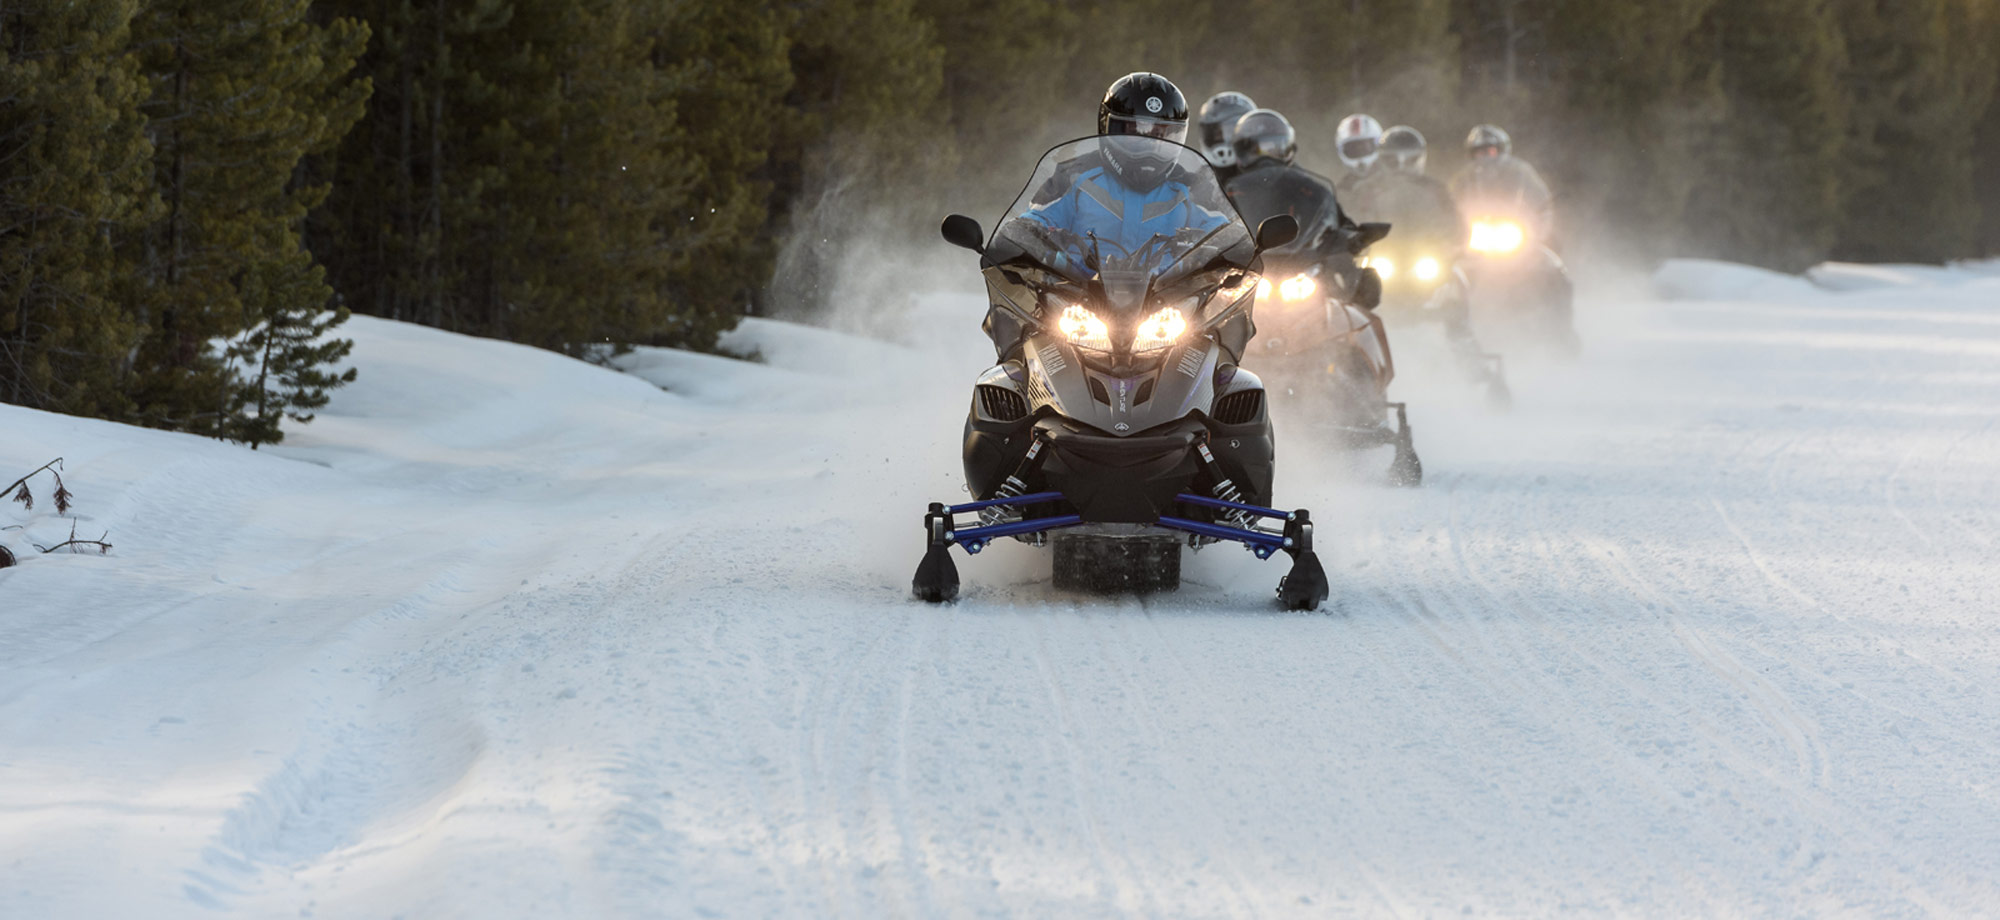 Snowmobilers riding in formation along trail